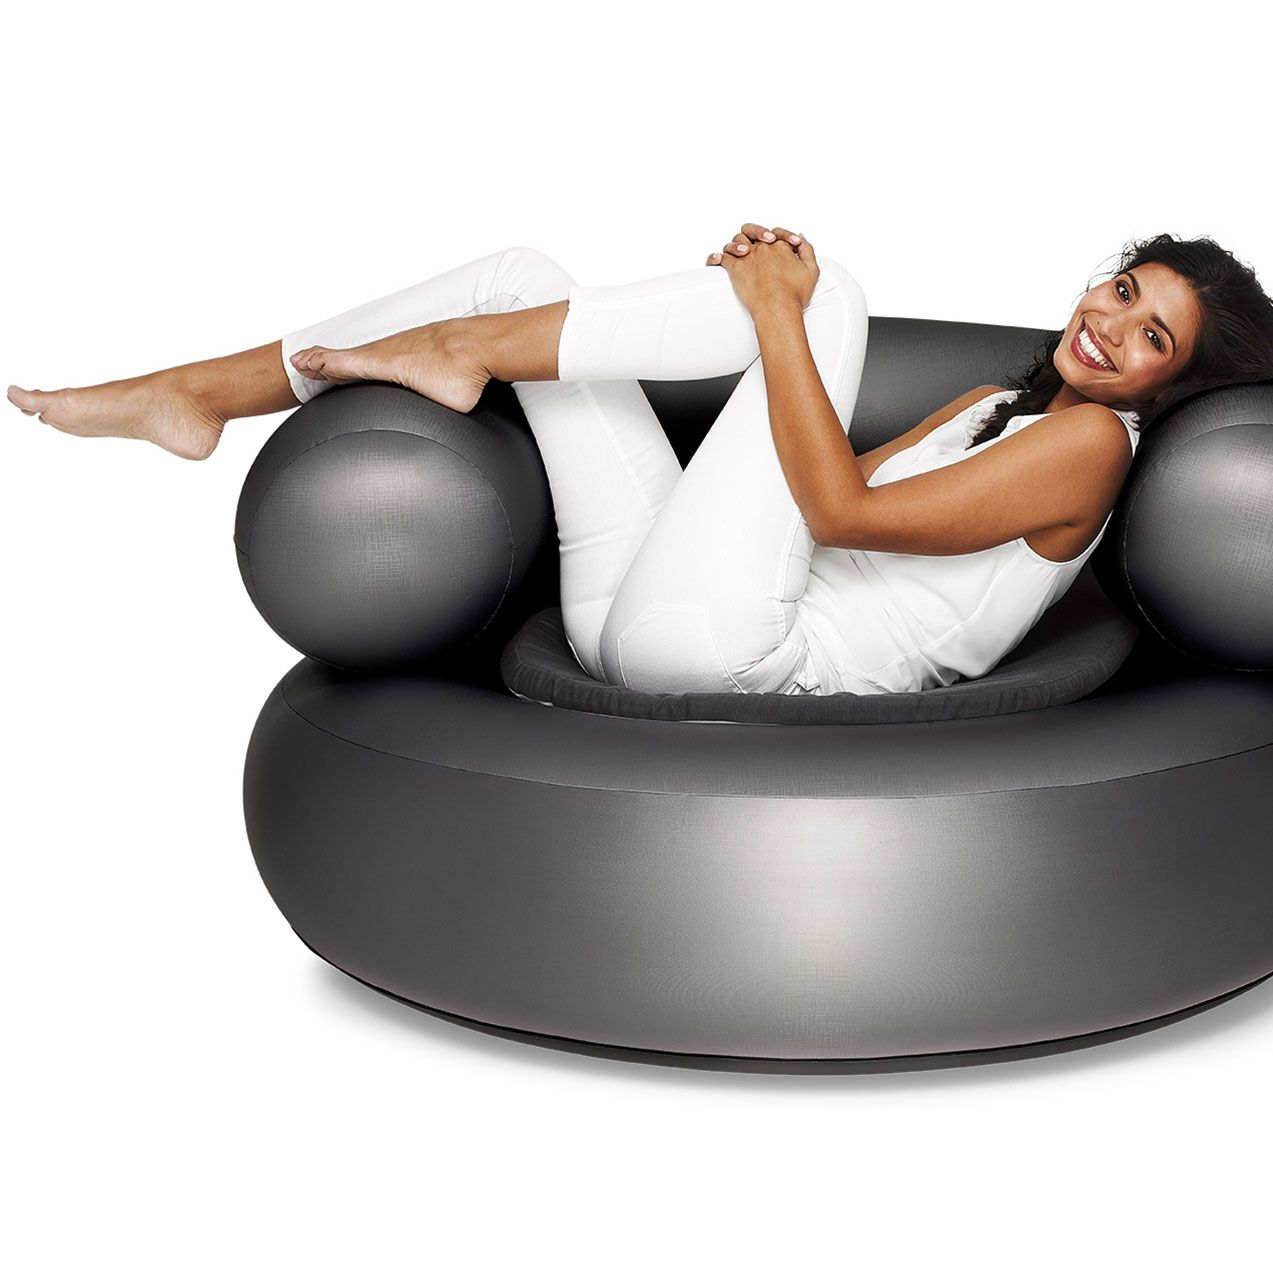 The Fatboy Ch Air Is An Inflatable Lounge Chair Lounge Cushions Modern Lounge Chairs Inflatable Sofa